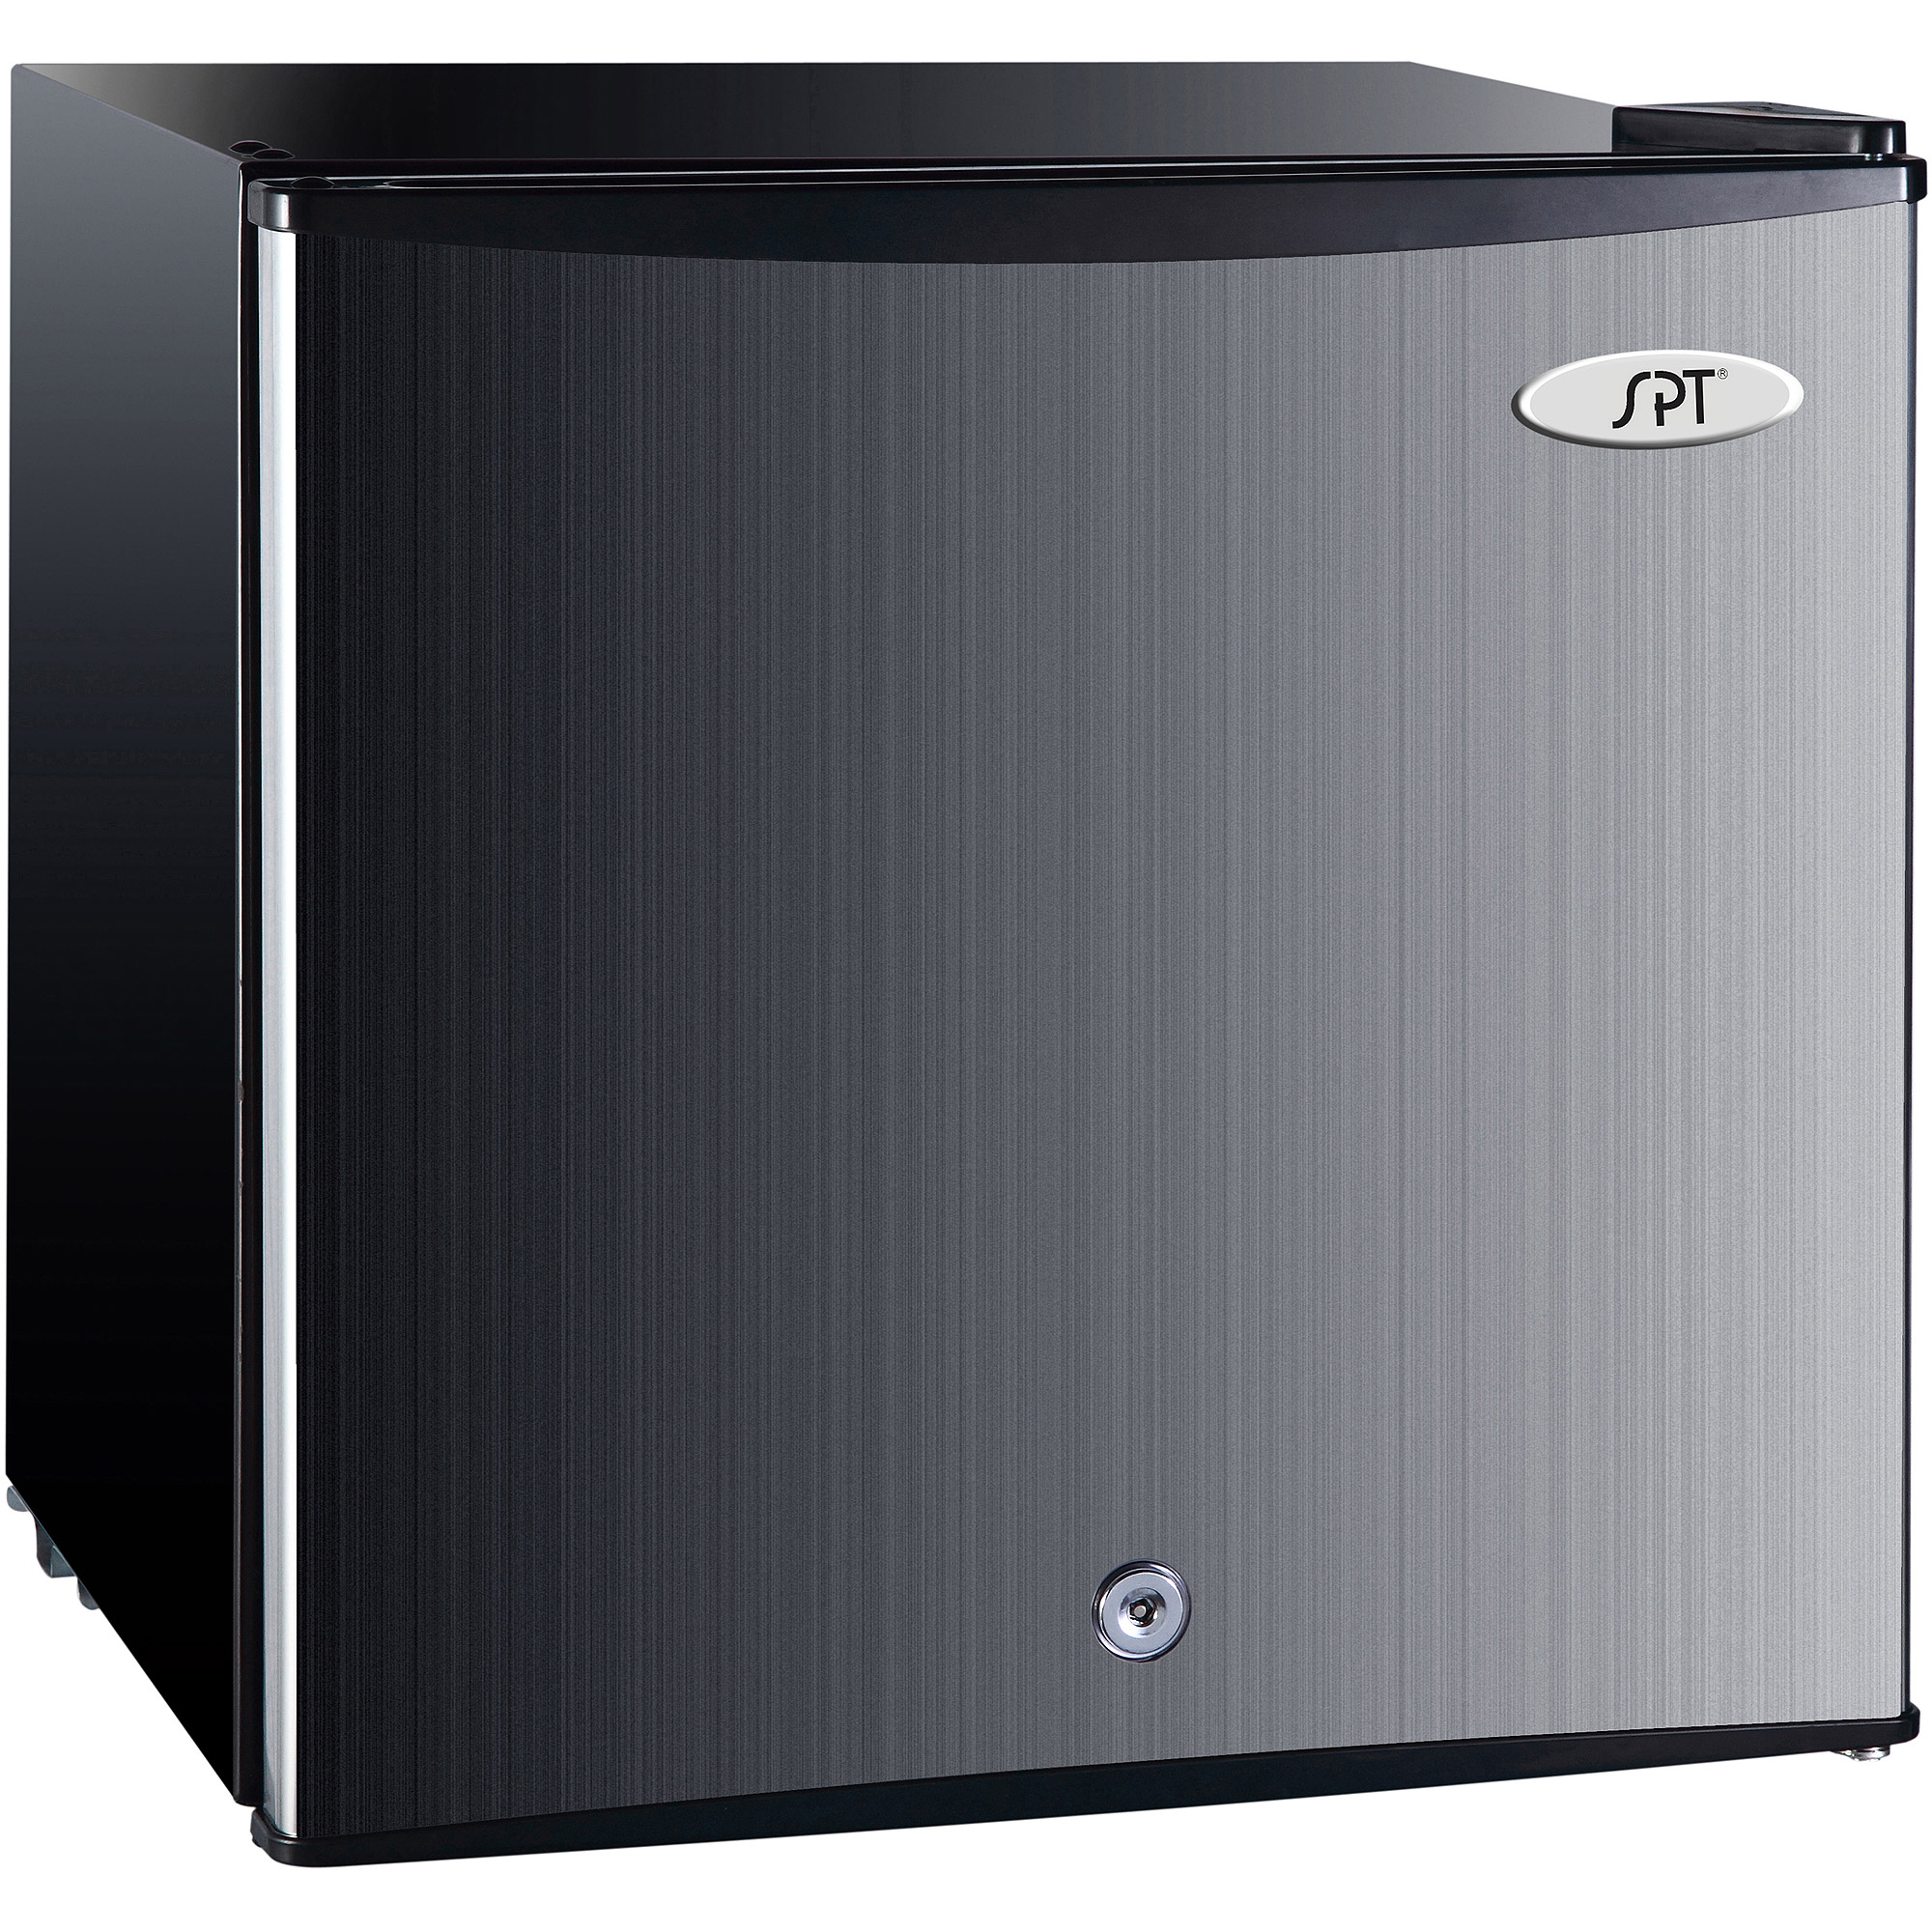 Sunpentown 1.1-cu. ft. Upright Freezer